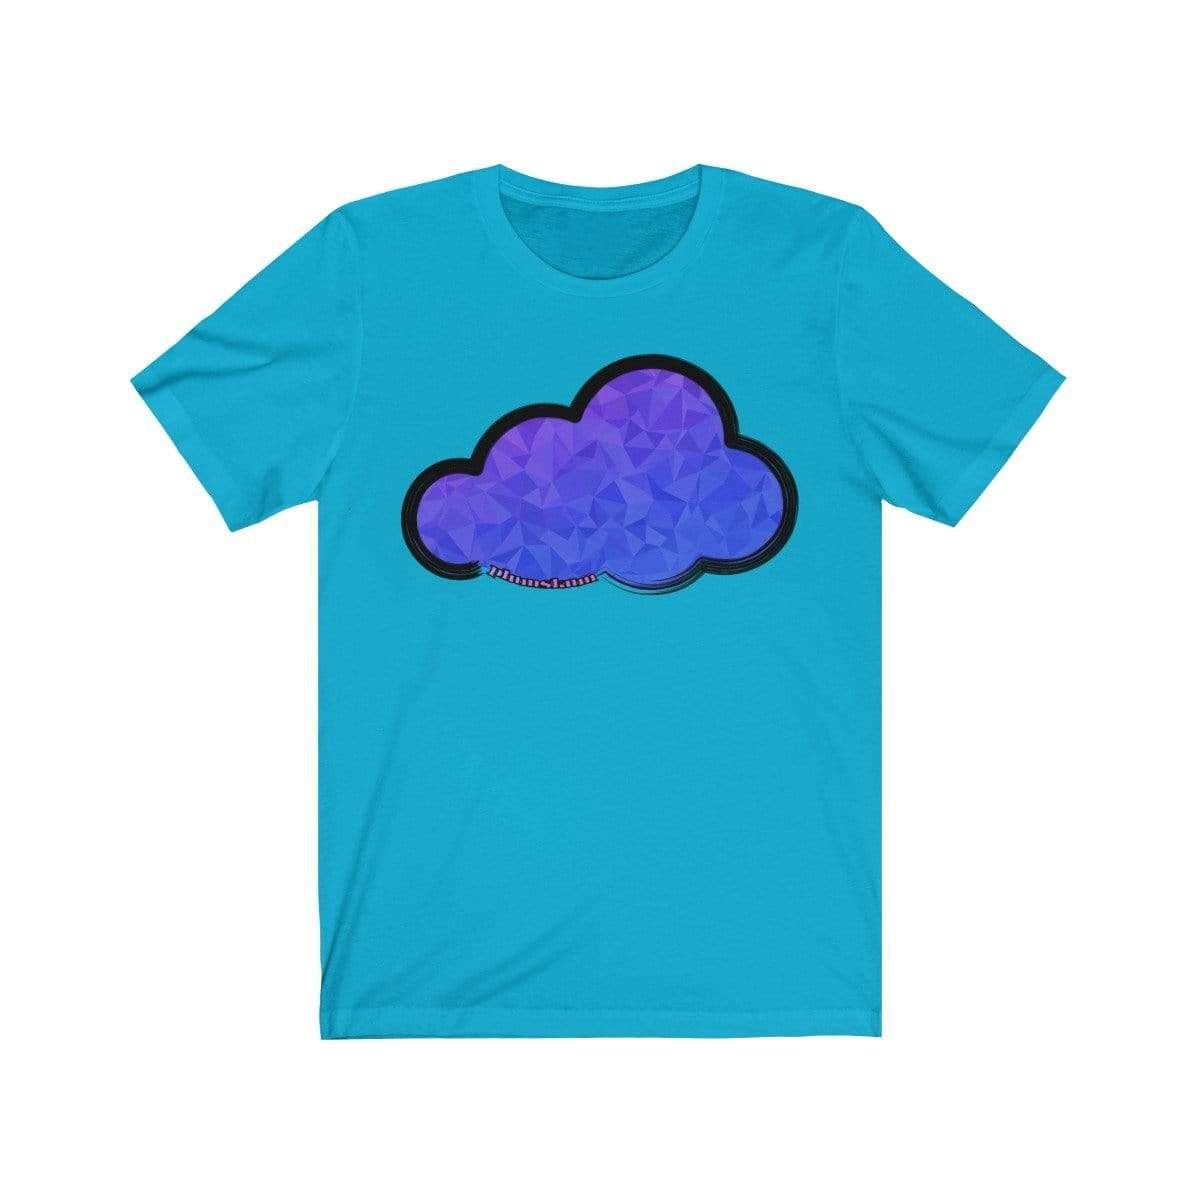 Printify T-Shirt Turquoise / M Plumskum Art Clouds Tee